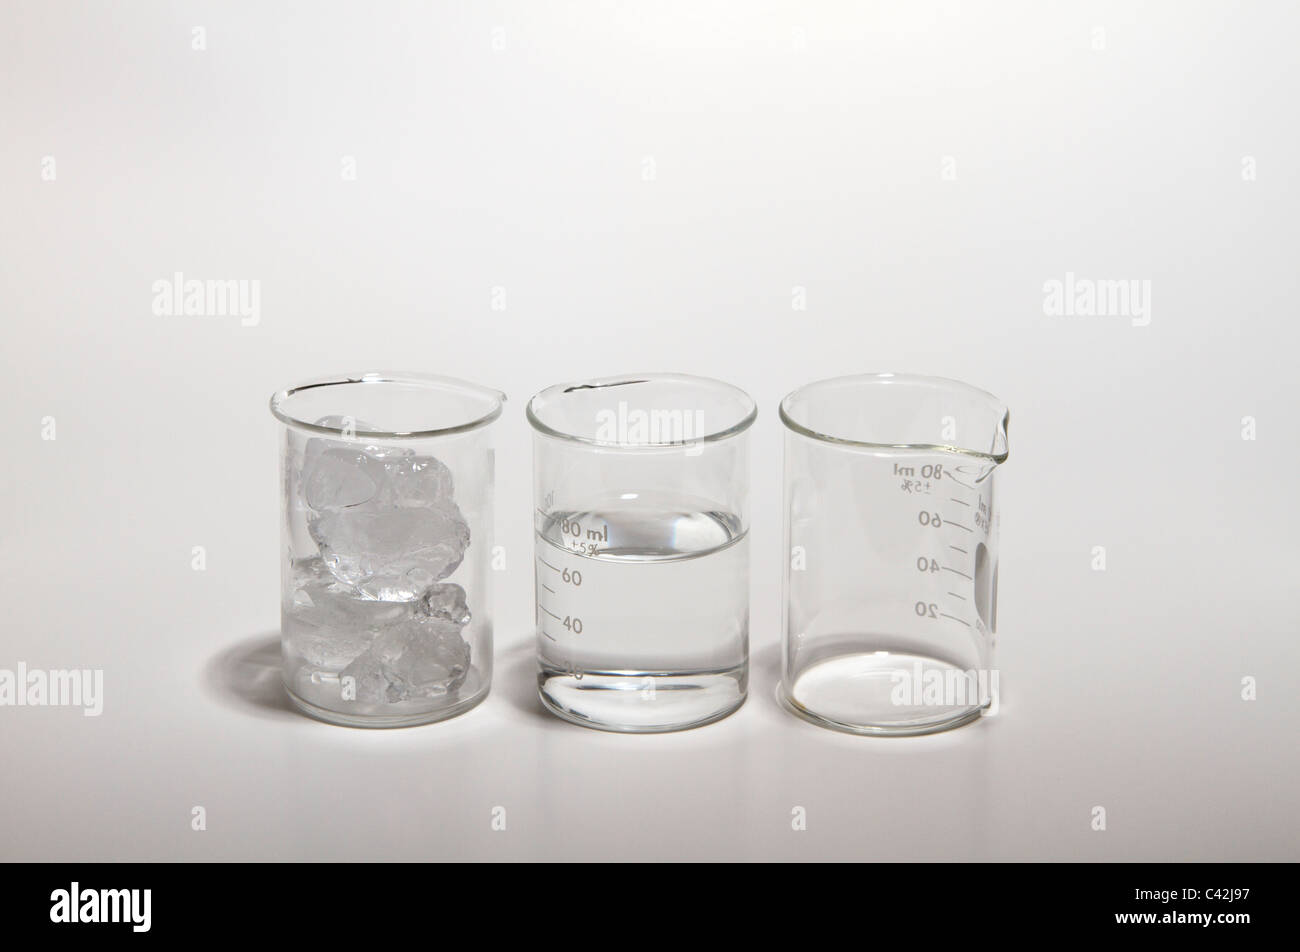 States of matter. Three beakers containing ice, water and air (that has some water vapor in it). - Stock Image